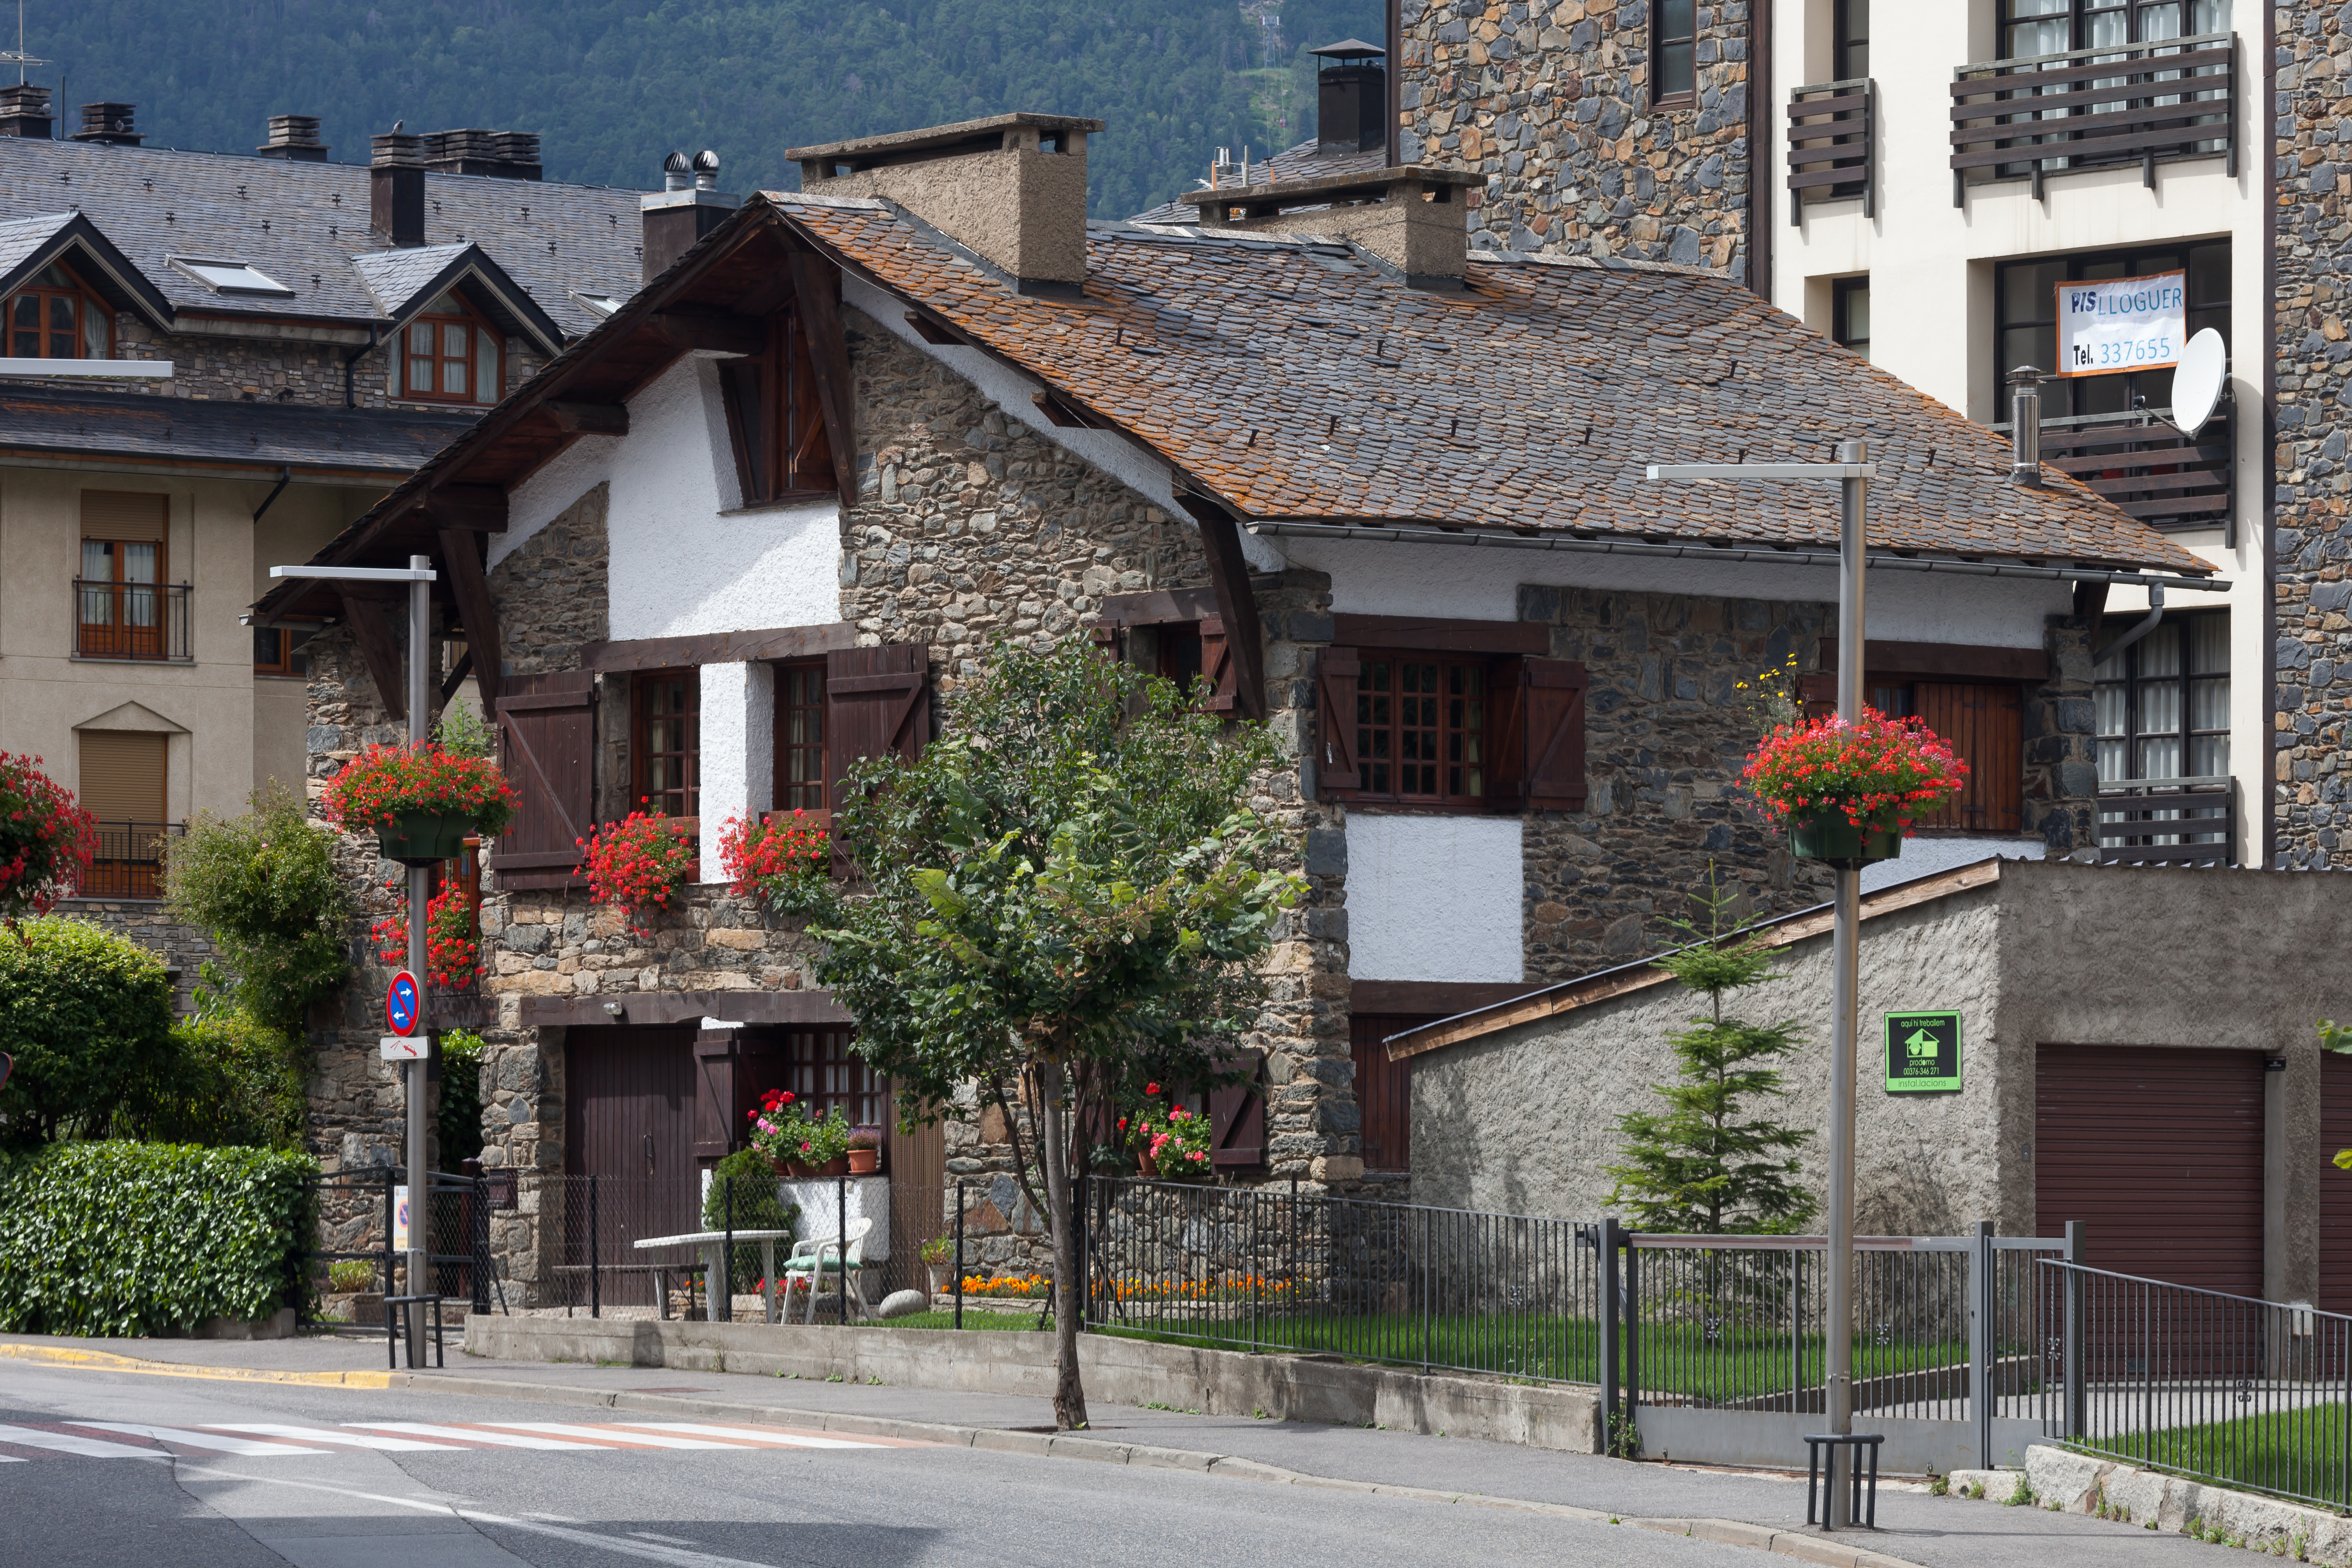 http://upload.wikimedia.org/wikipedia/commons/f/f3/House_in_Ordino._Andorra_220.jpg